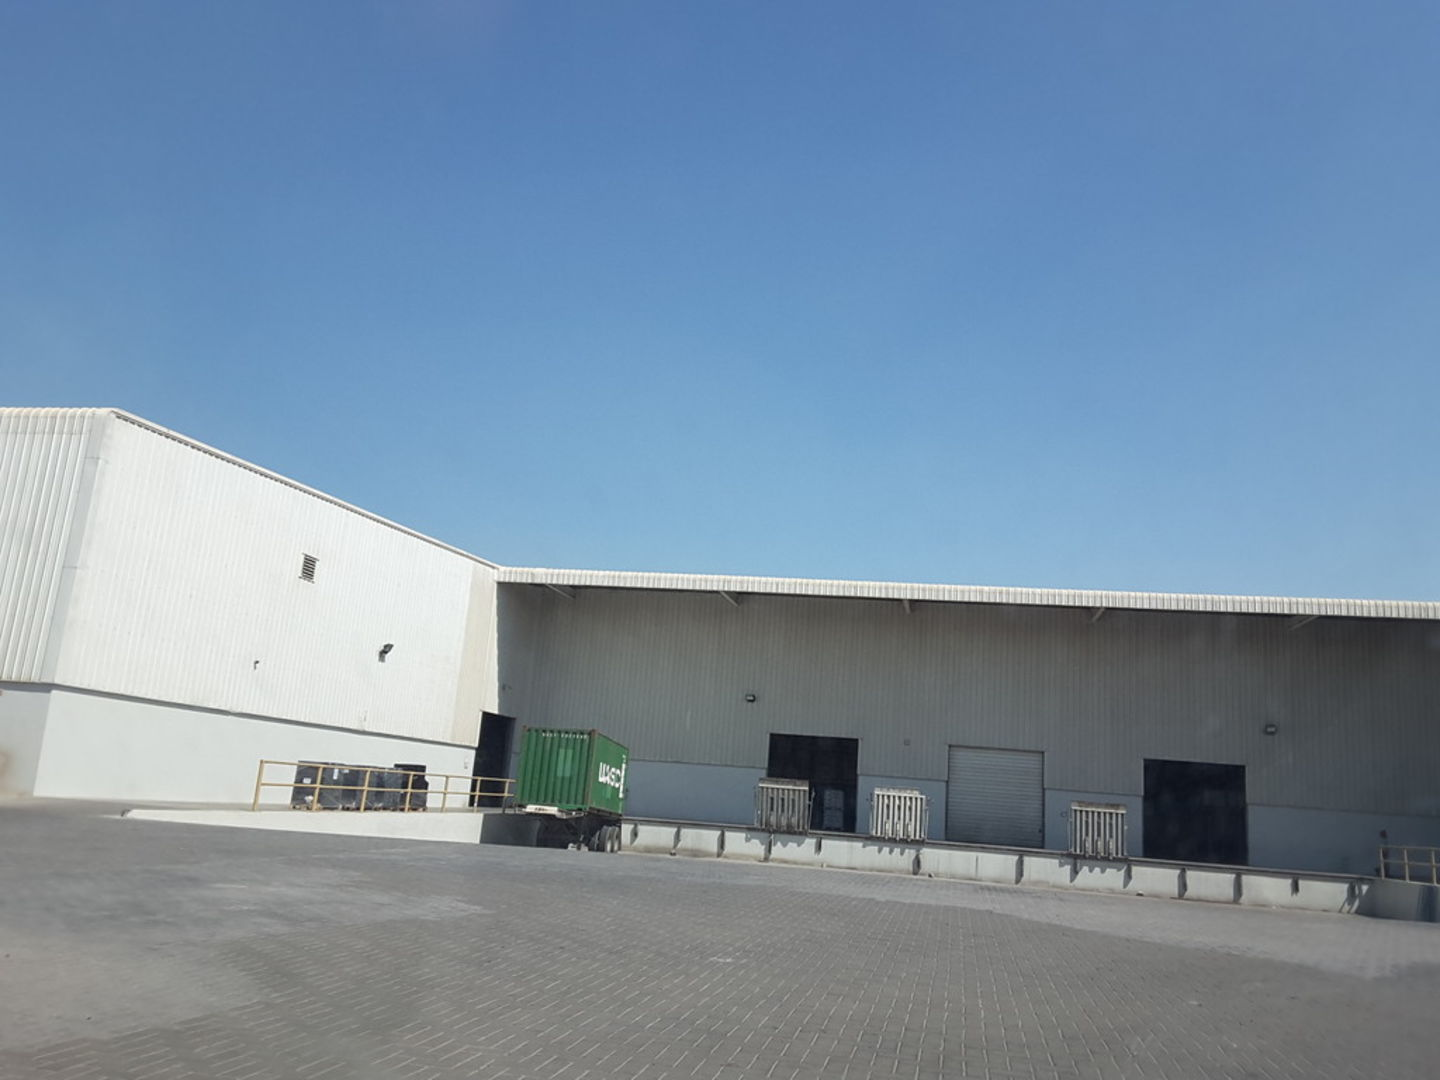 HiDubai-business-al-ghazal-logistics-shipping-logistics-shelving-warehousing-services-jebel-ali-free-zone-mena-jebel-ali-dubai